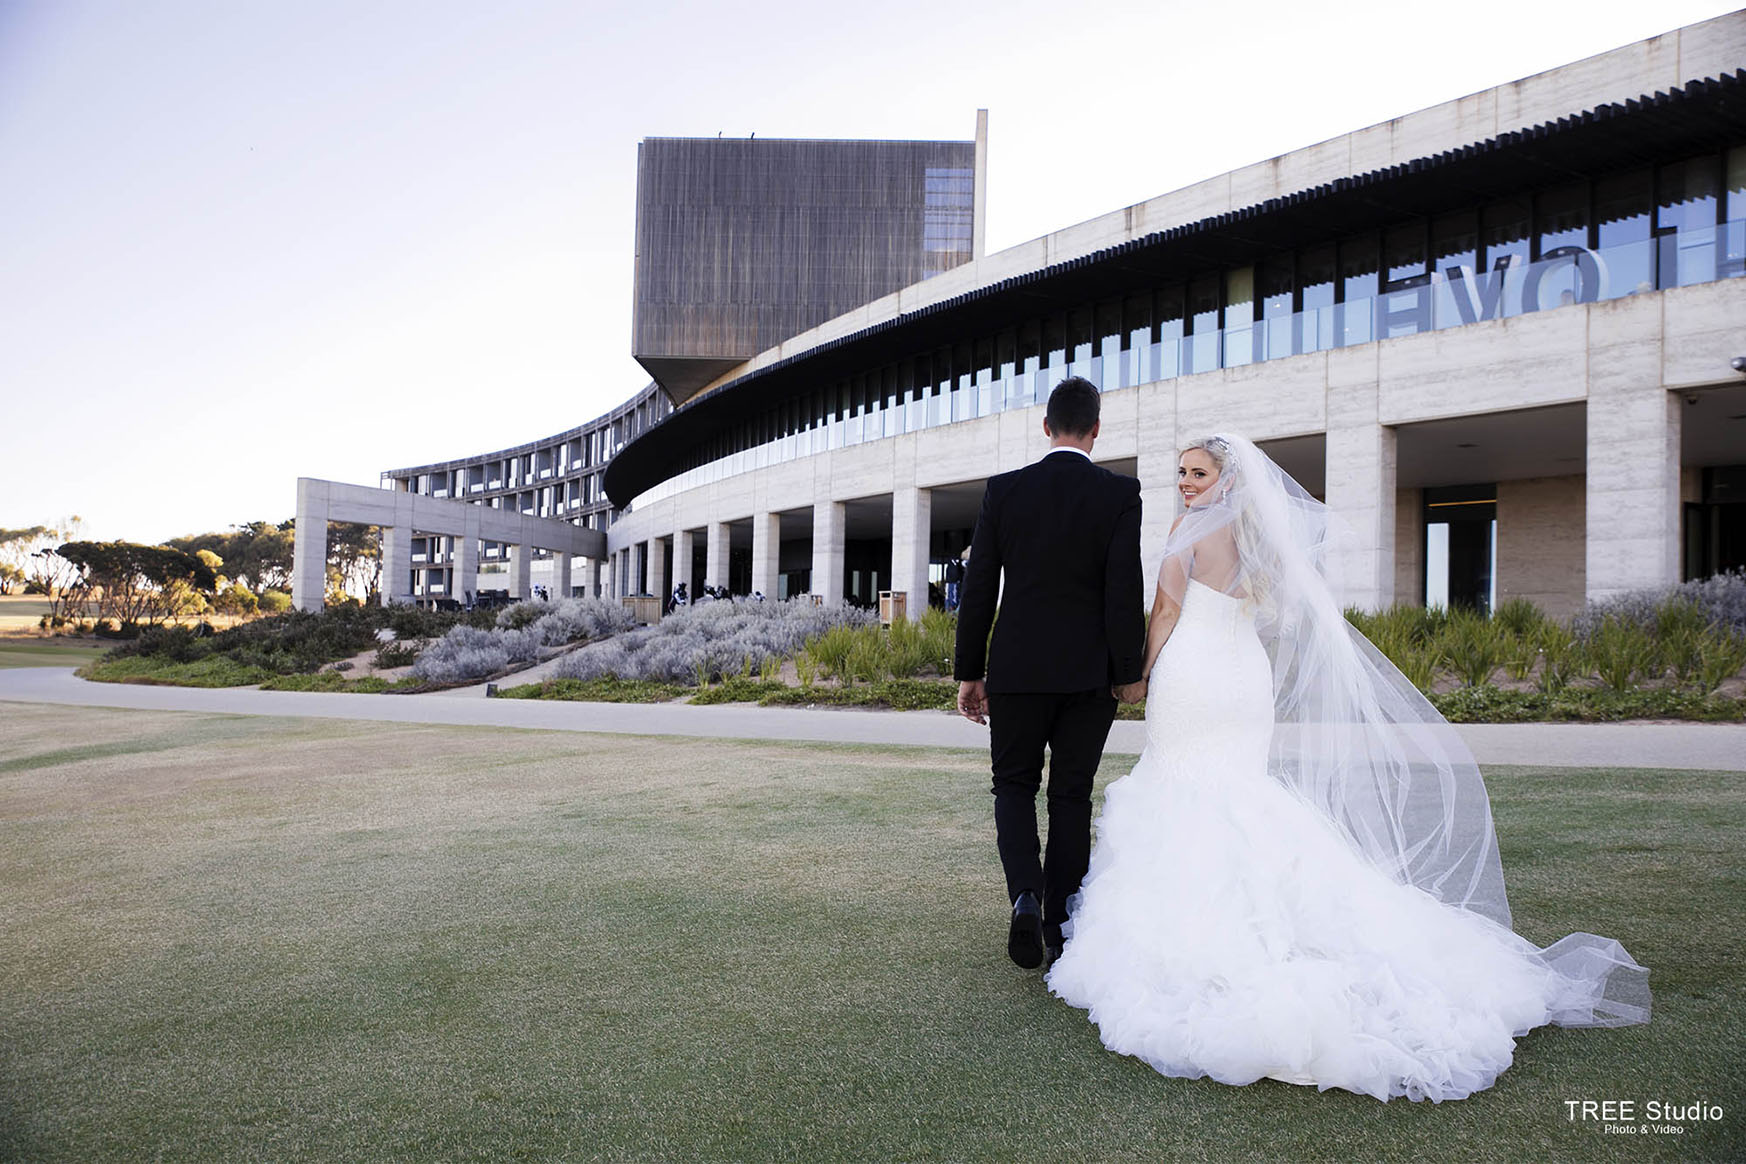 How Wedding Photographer worth the investment?